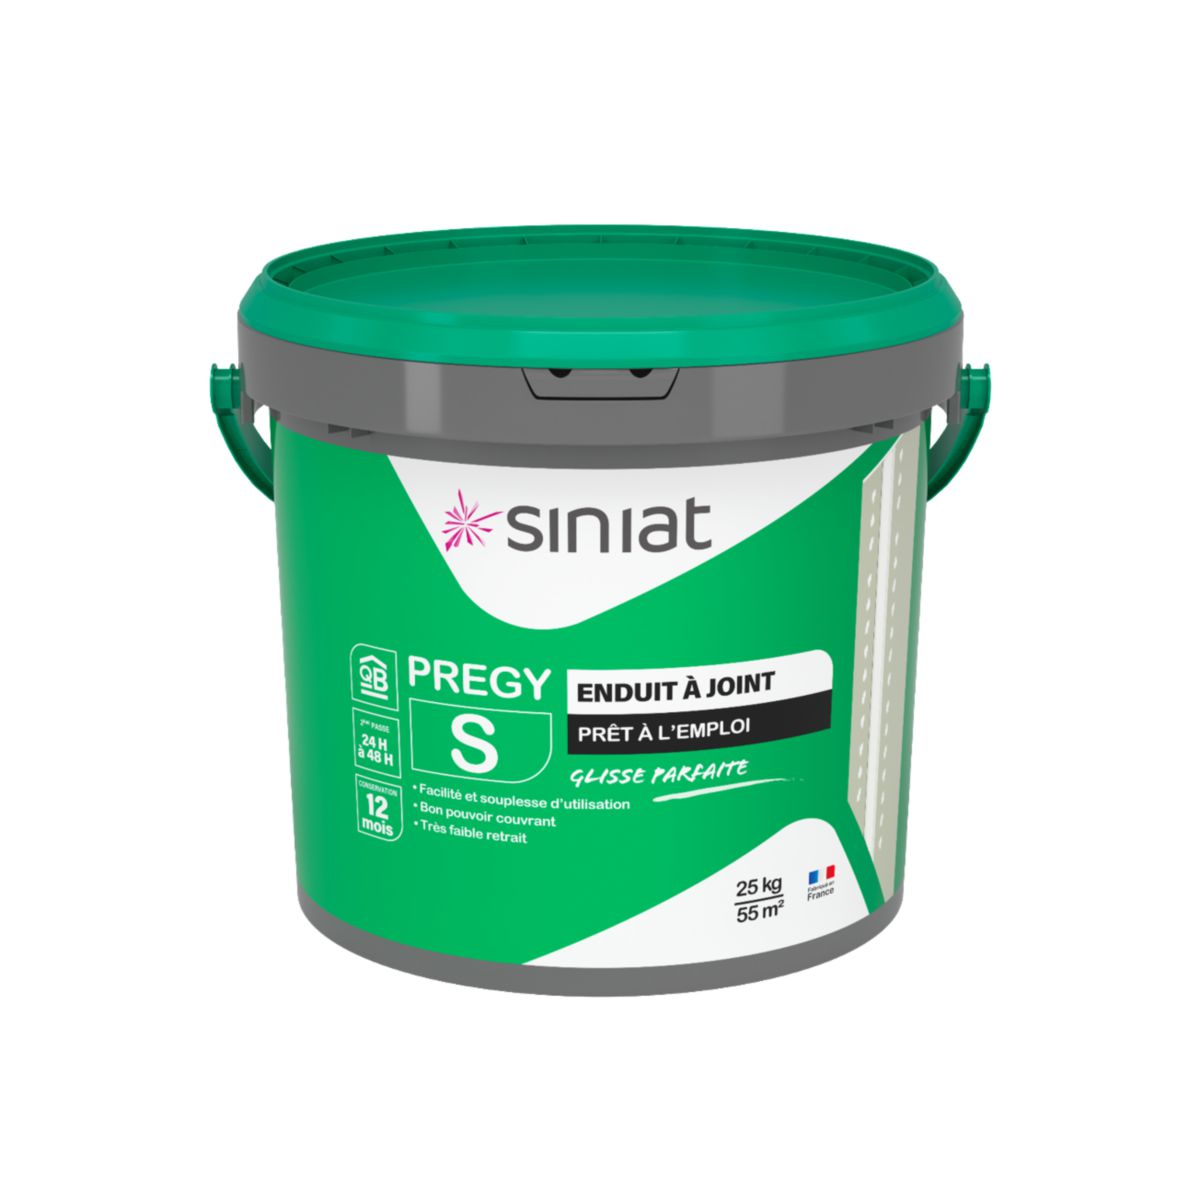 enduit joint schage prt lemploi prgy s pe seau de 25 kg siniat pltre isolation ite distributeur de matriaux de construction point